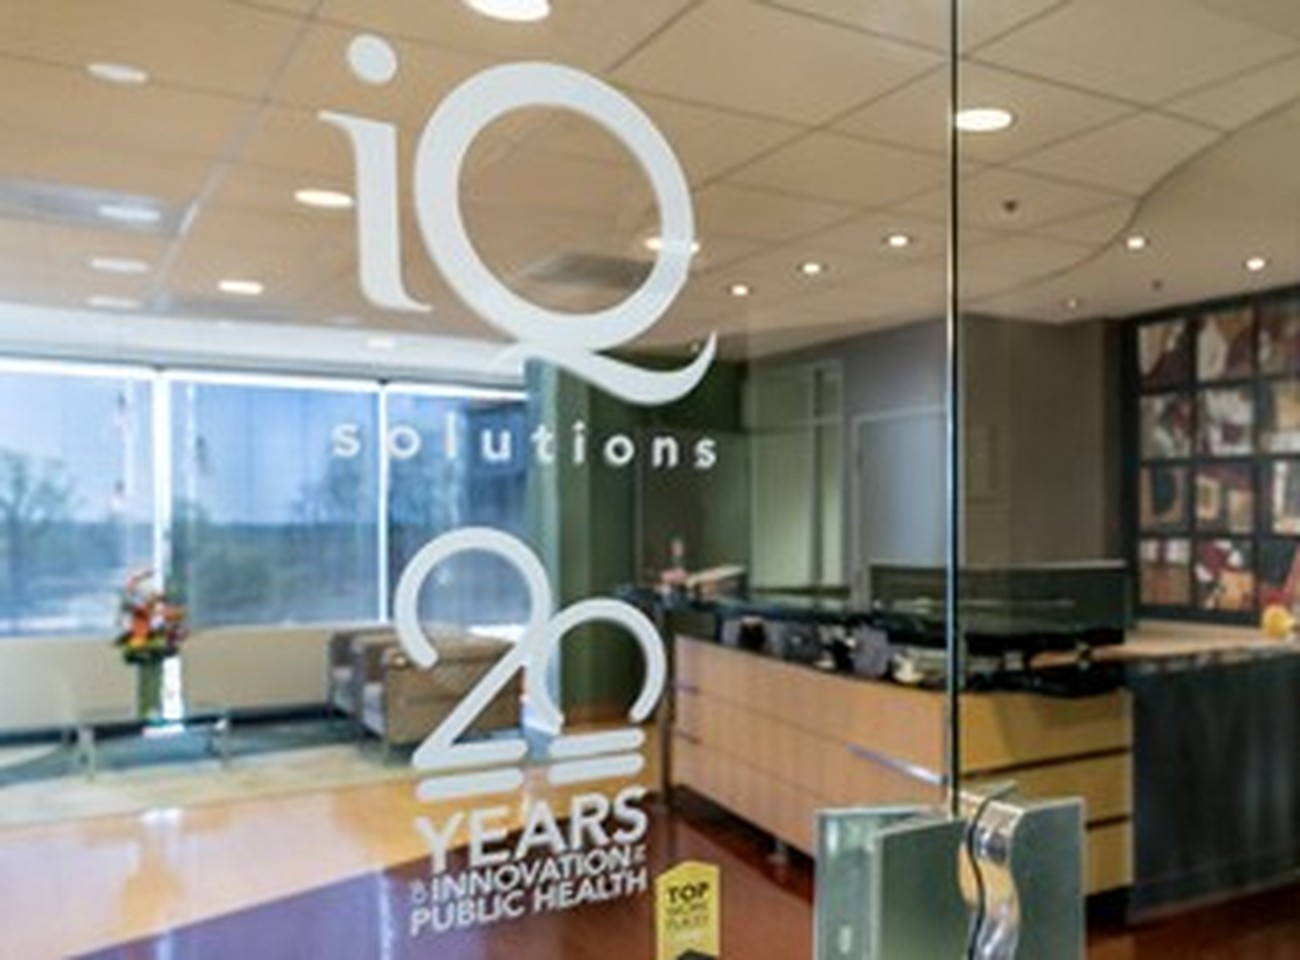 IQ Solutions Careers